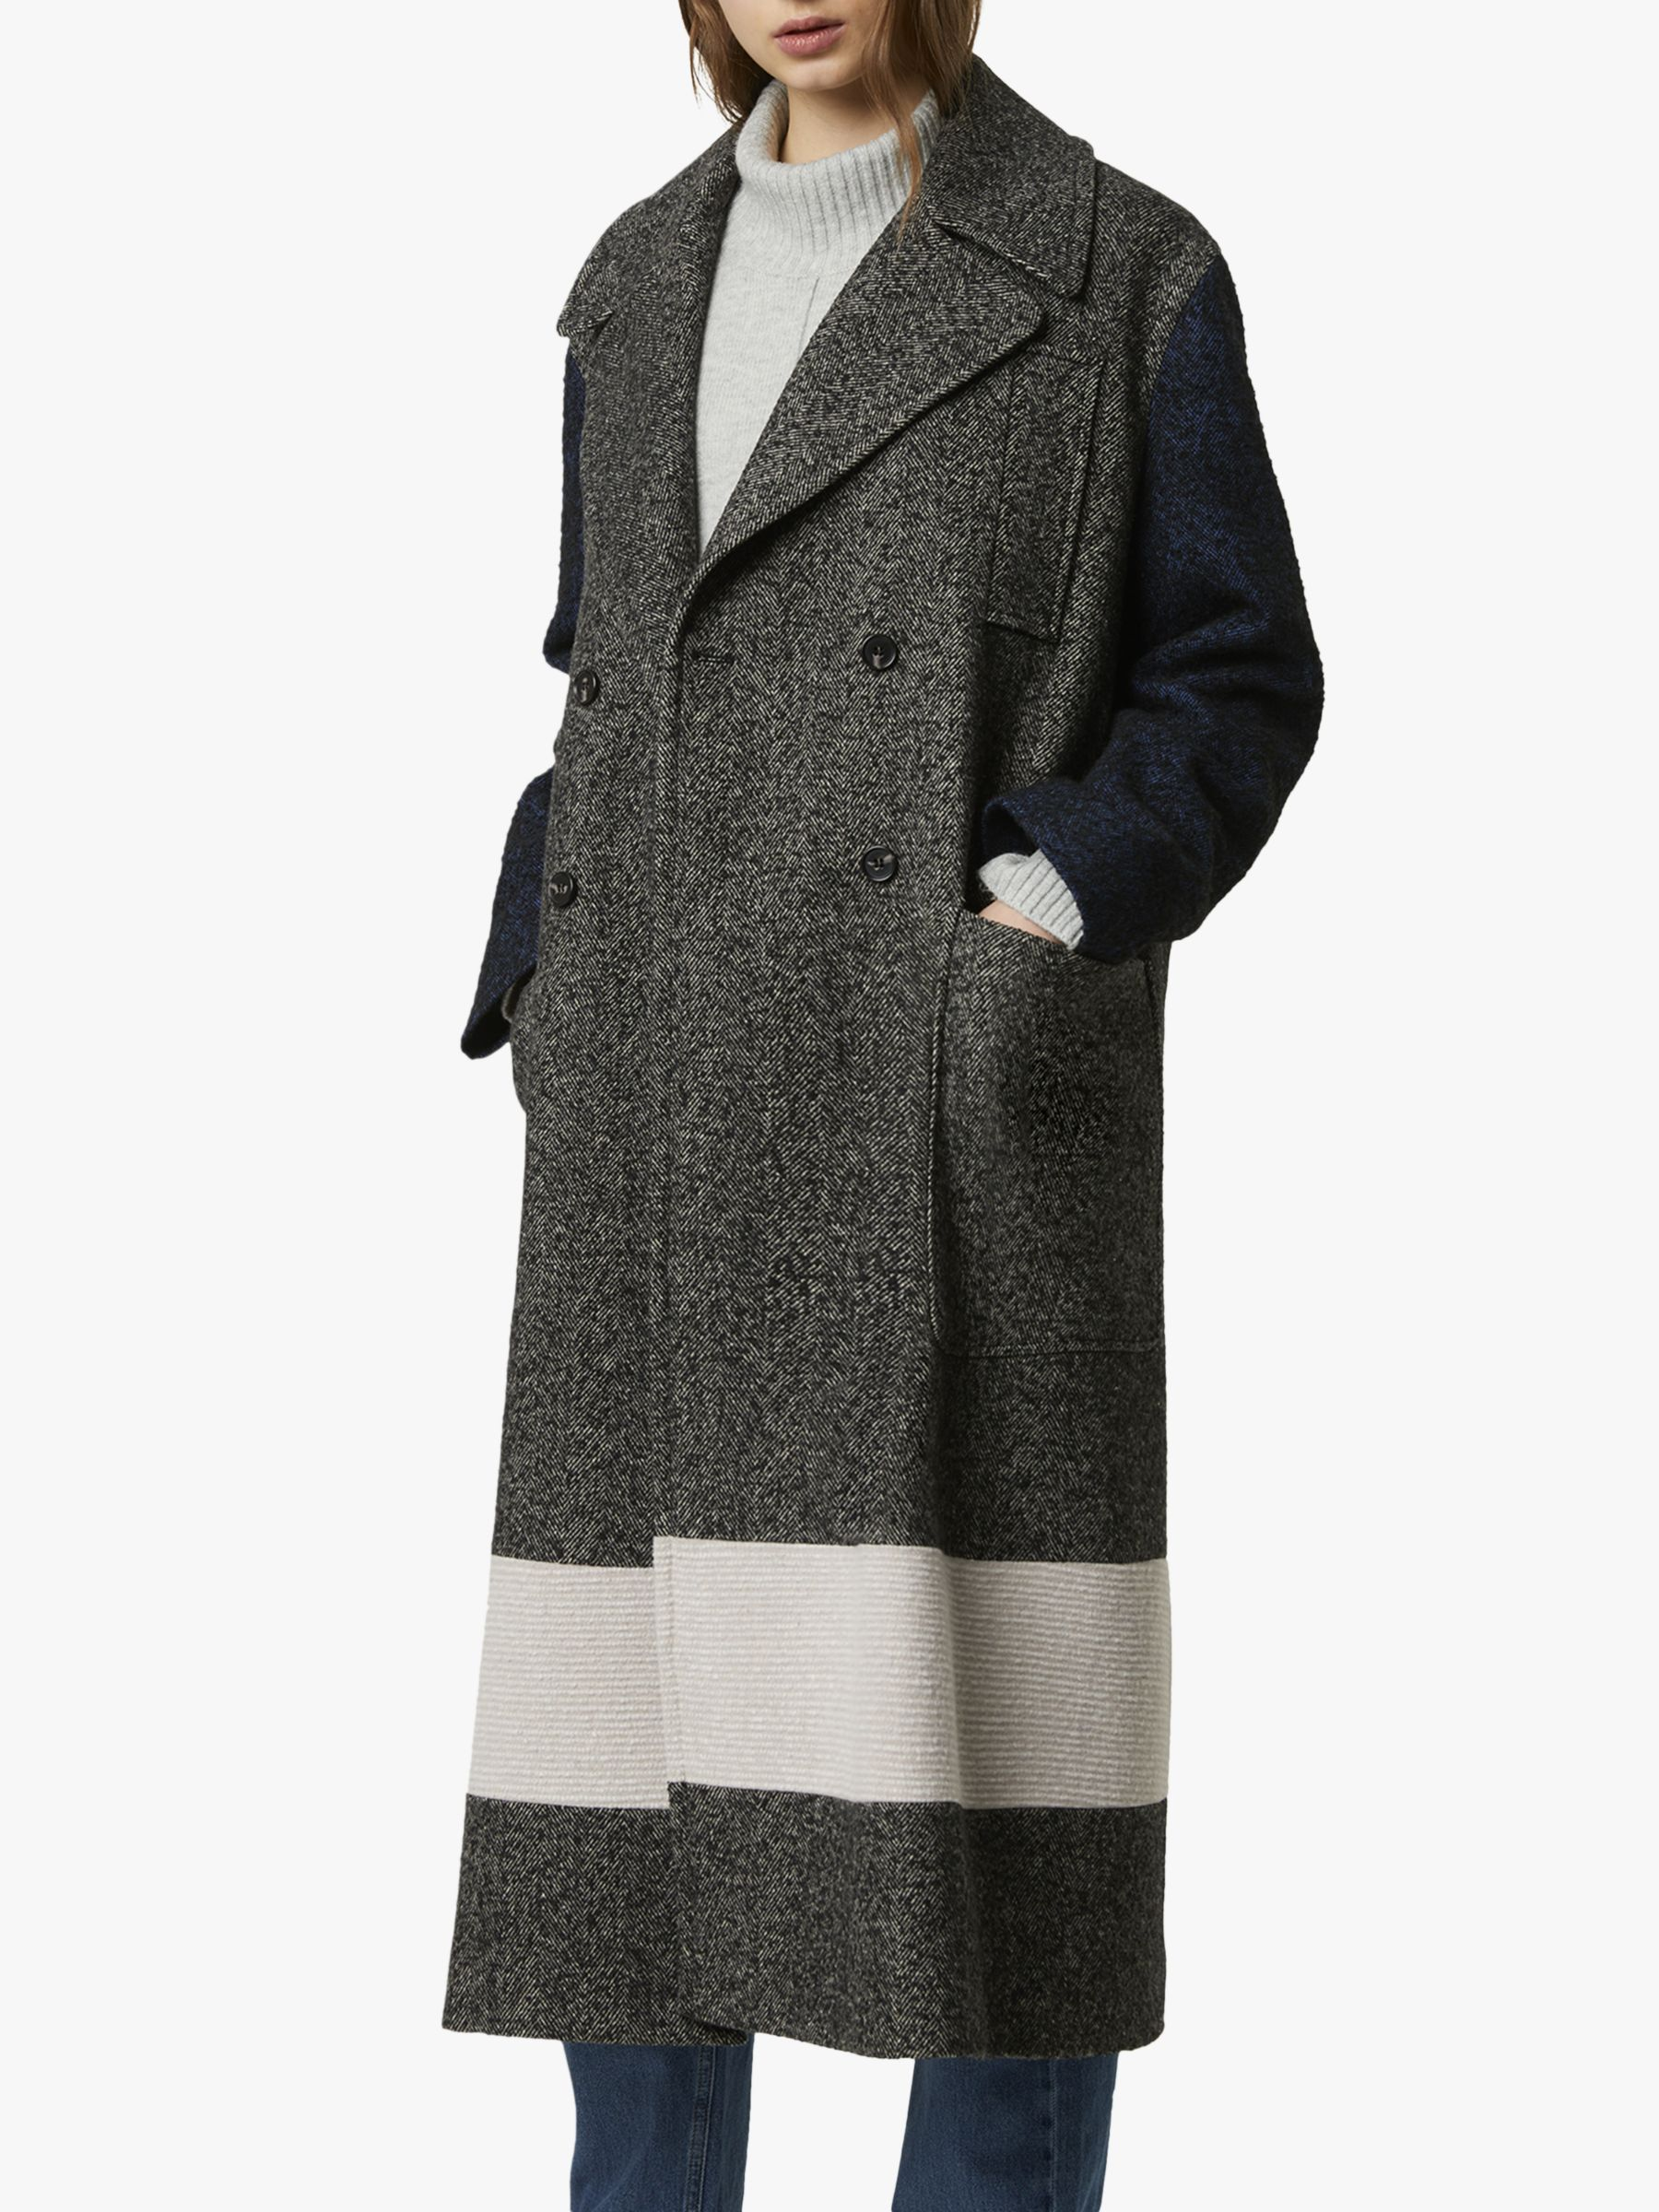 French Connection French Connection Tweed Long Peacoat, Salt/Pepper